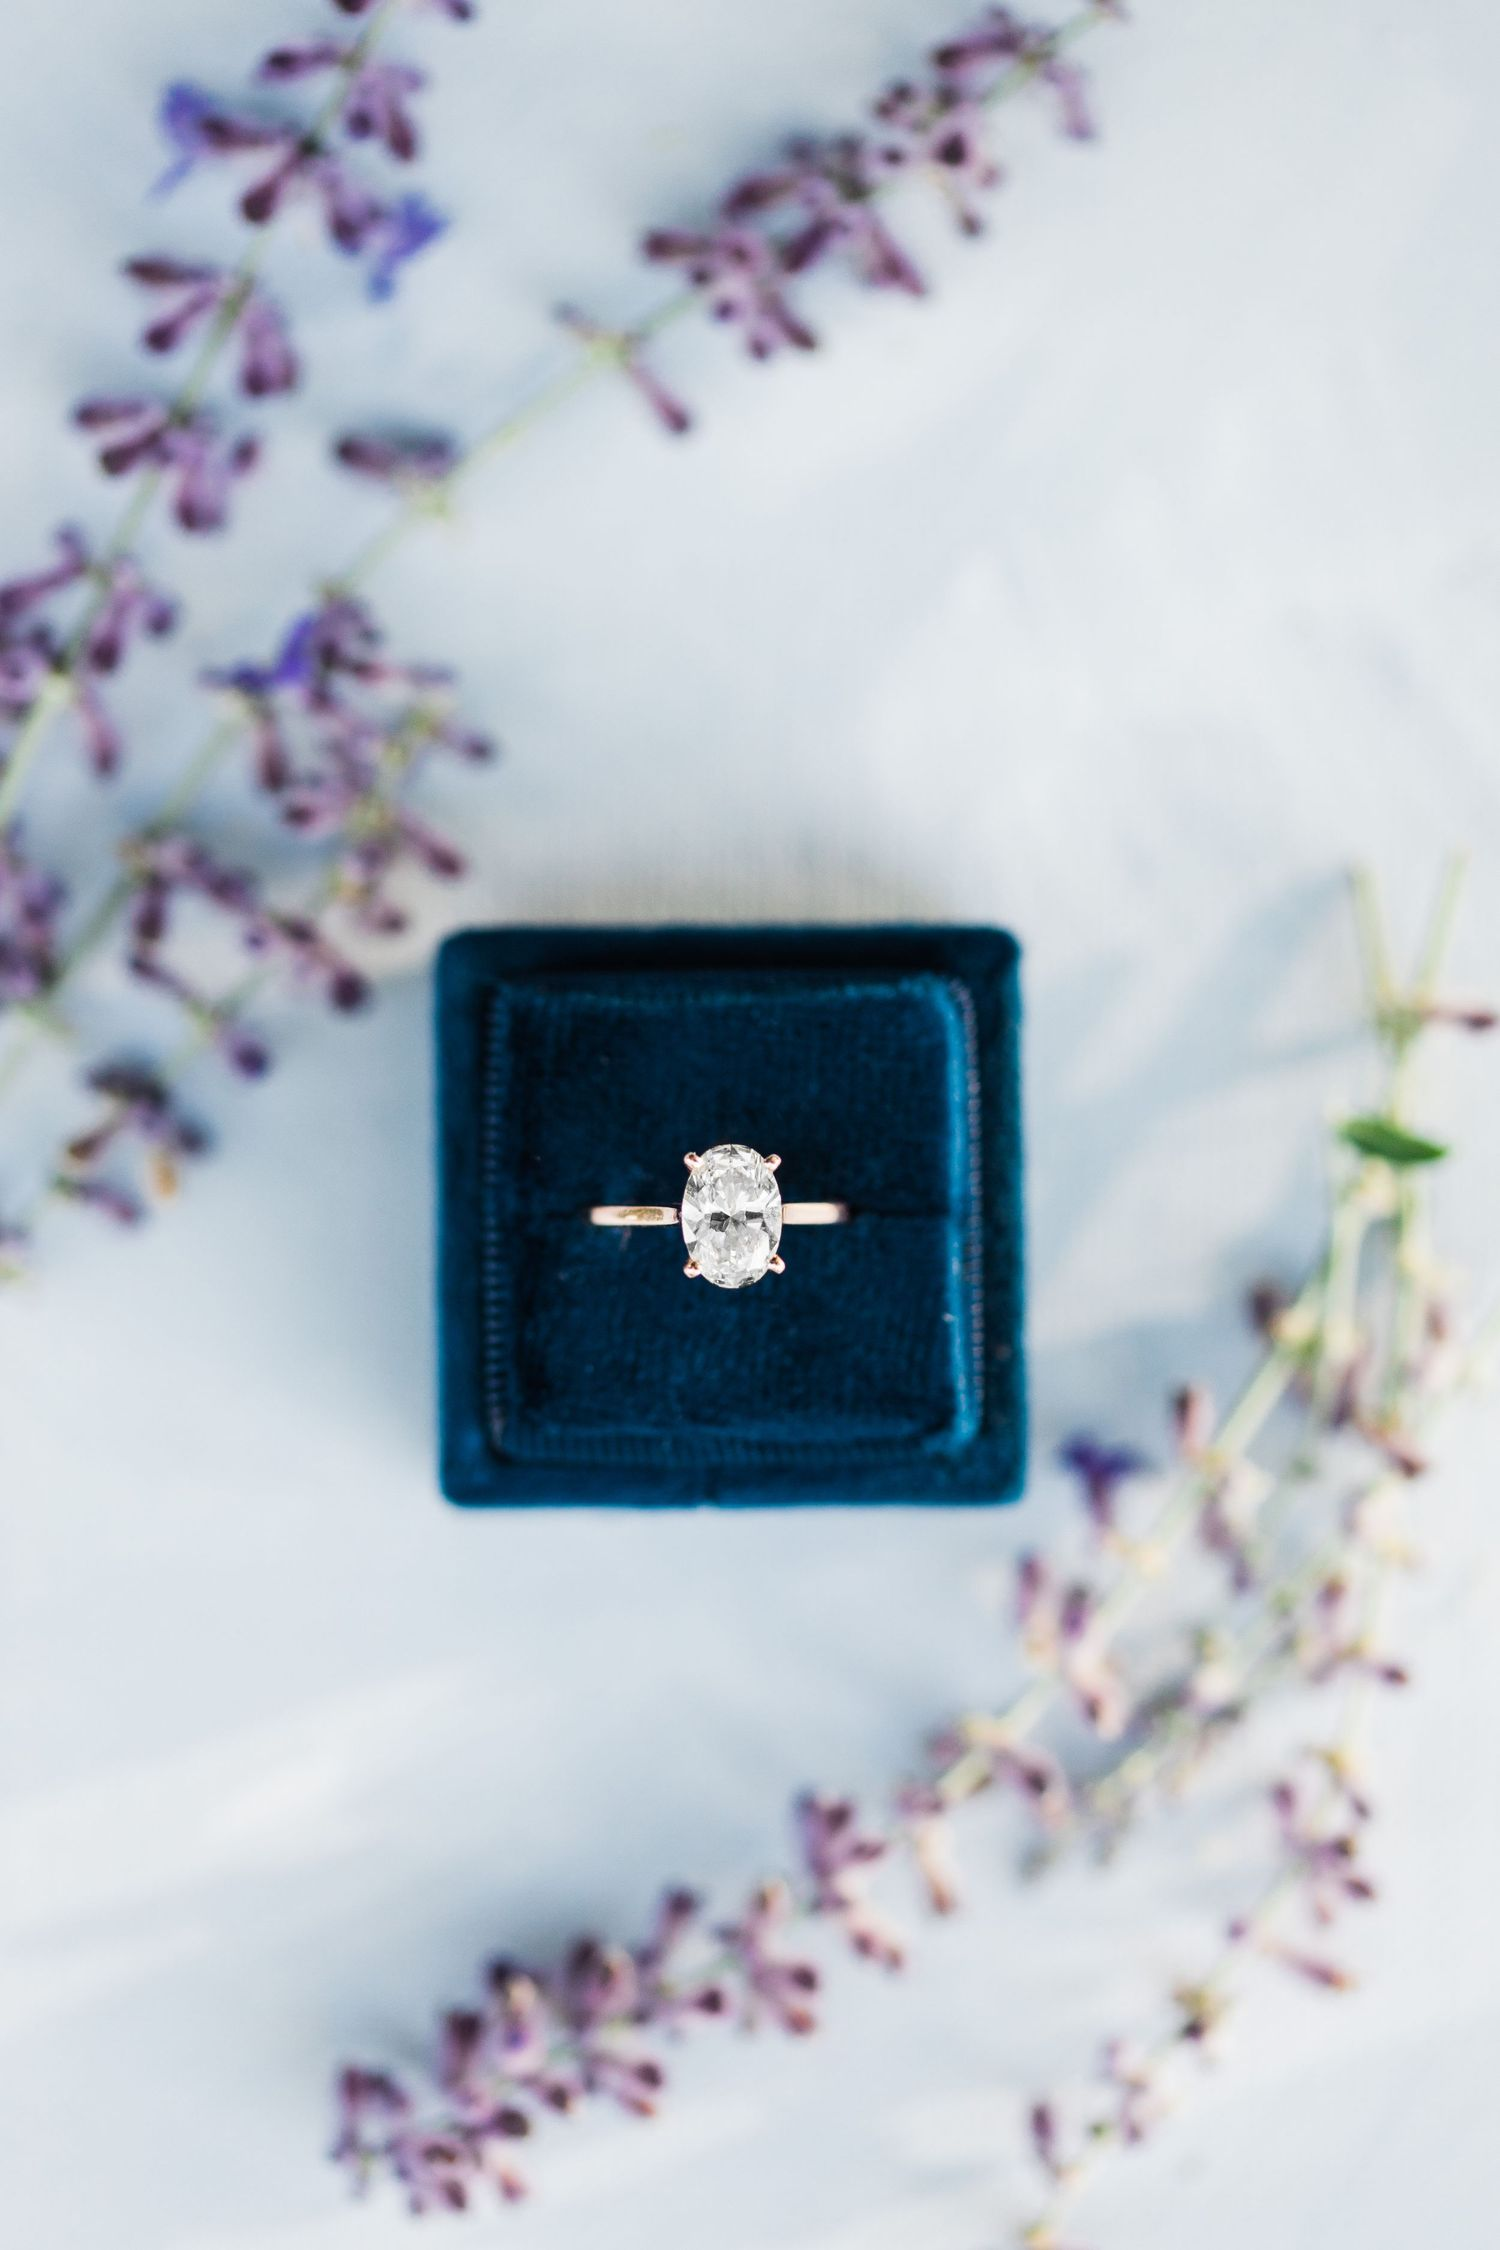 Timeless oval engagement ring in navy blue box